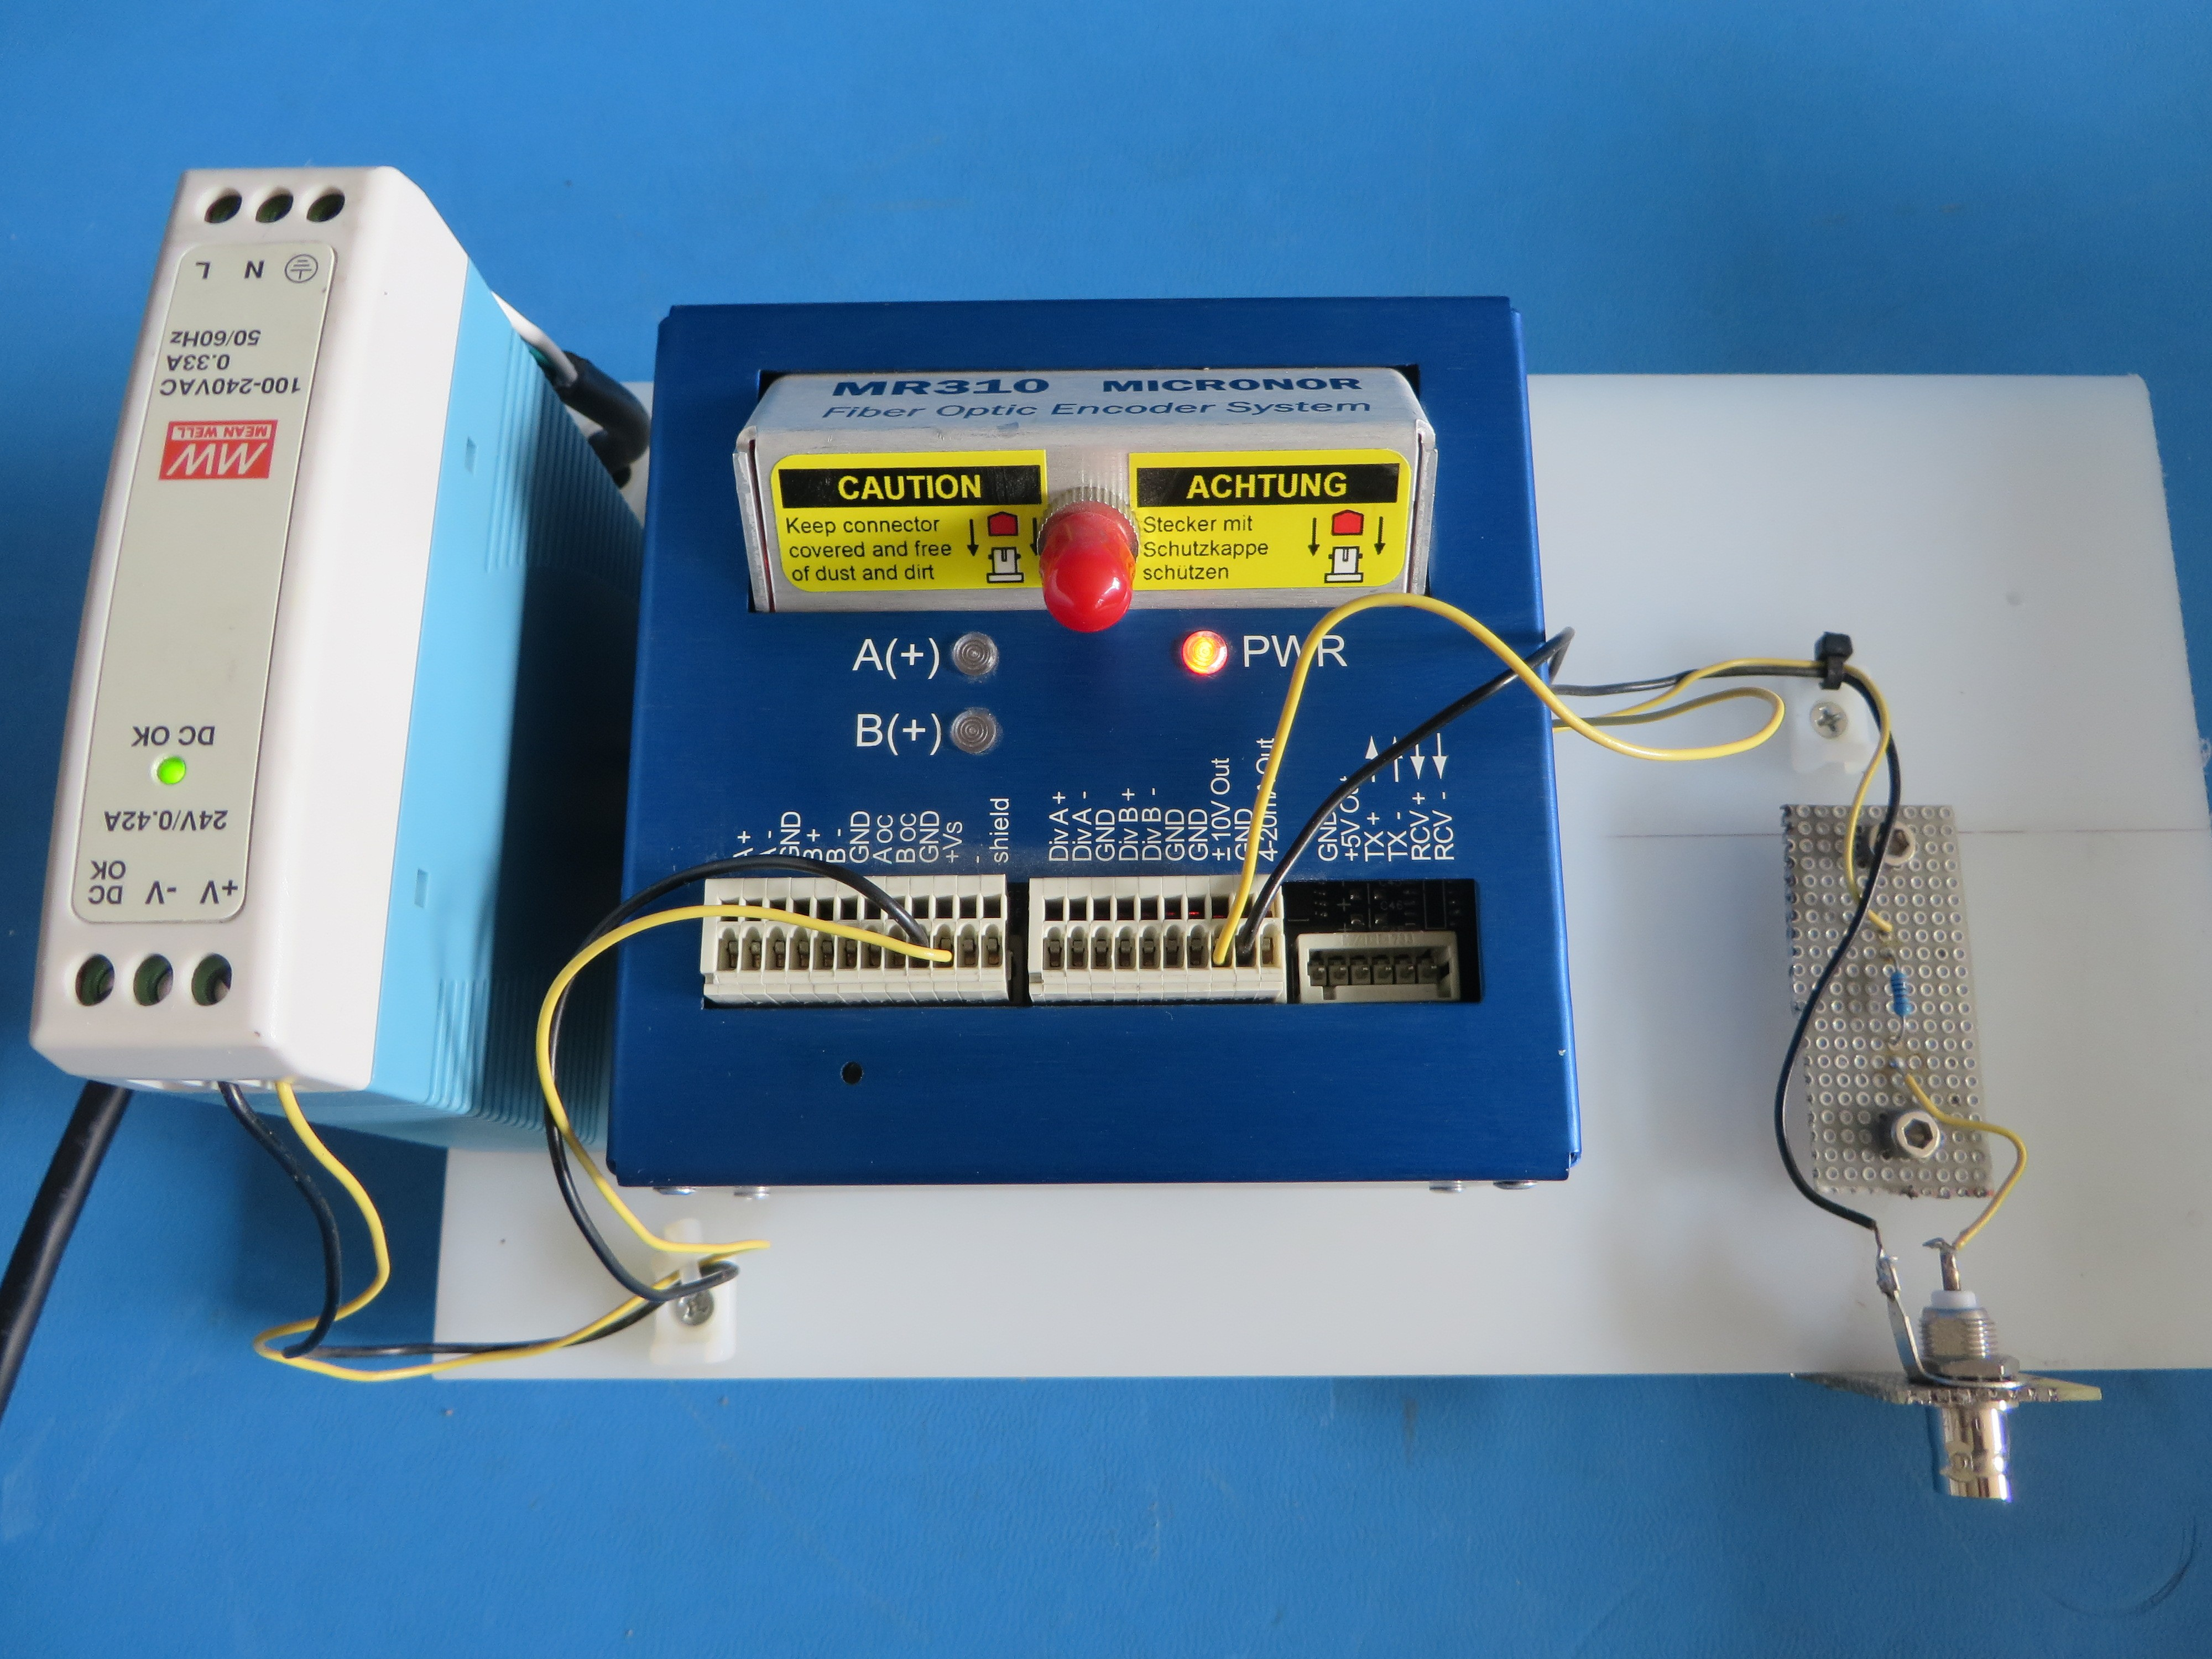 Micronor Mr310 Fiber Optic Encoder Controller Module W 24v Power Optics Integrated Circuits Images Of Supply